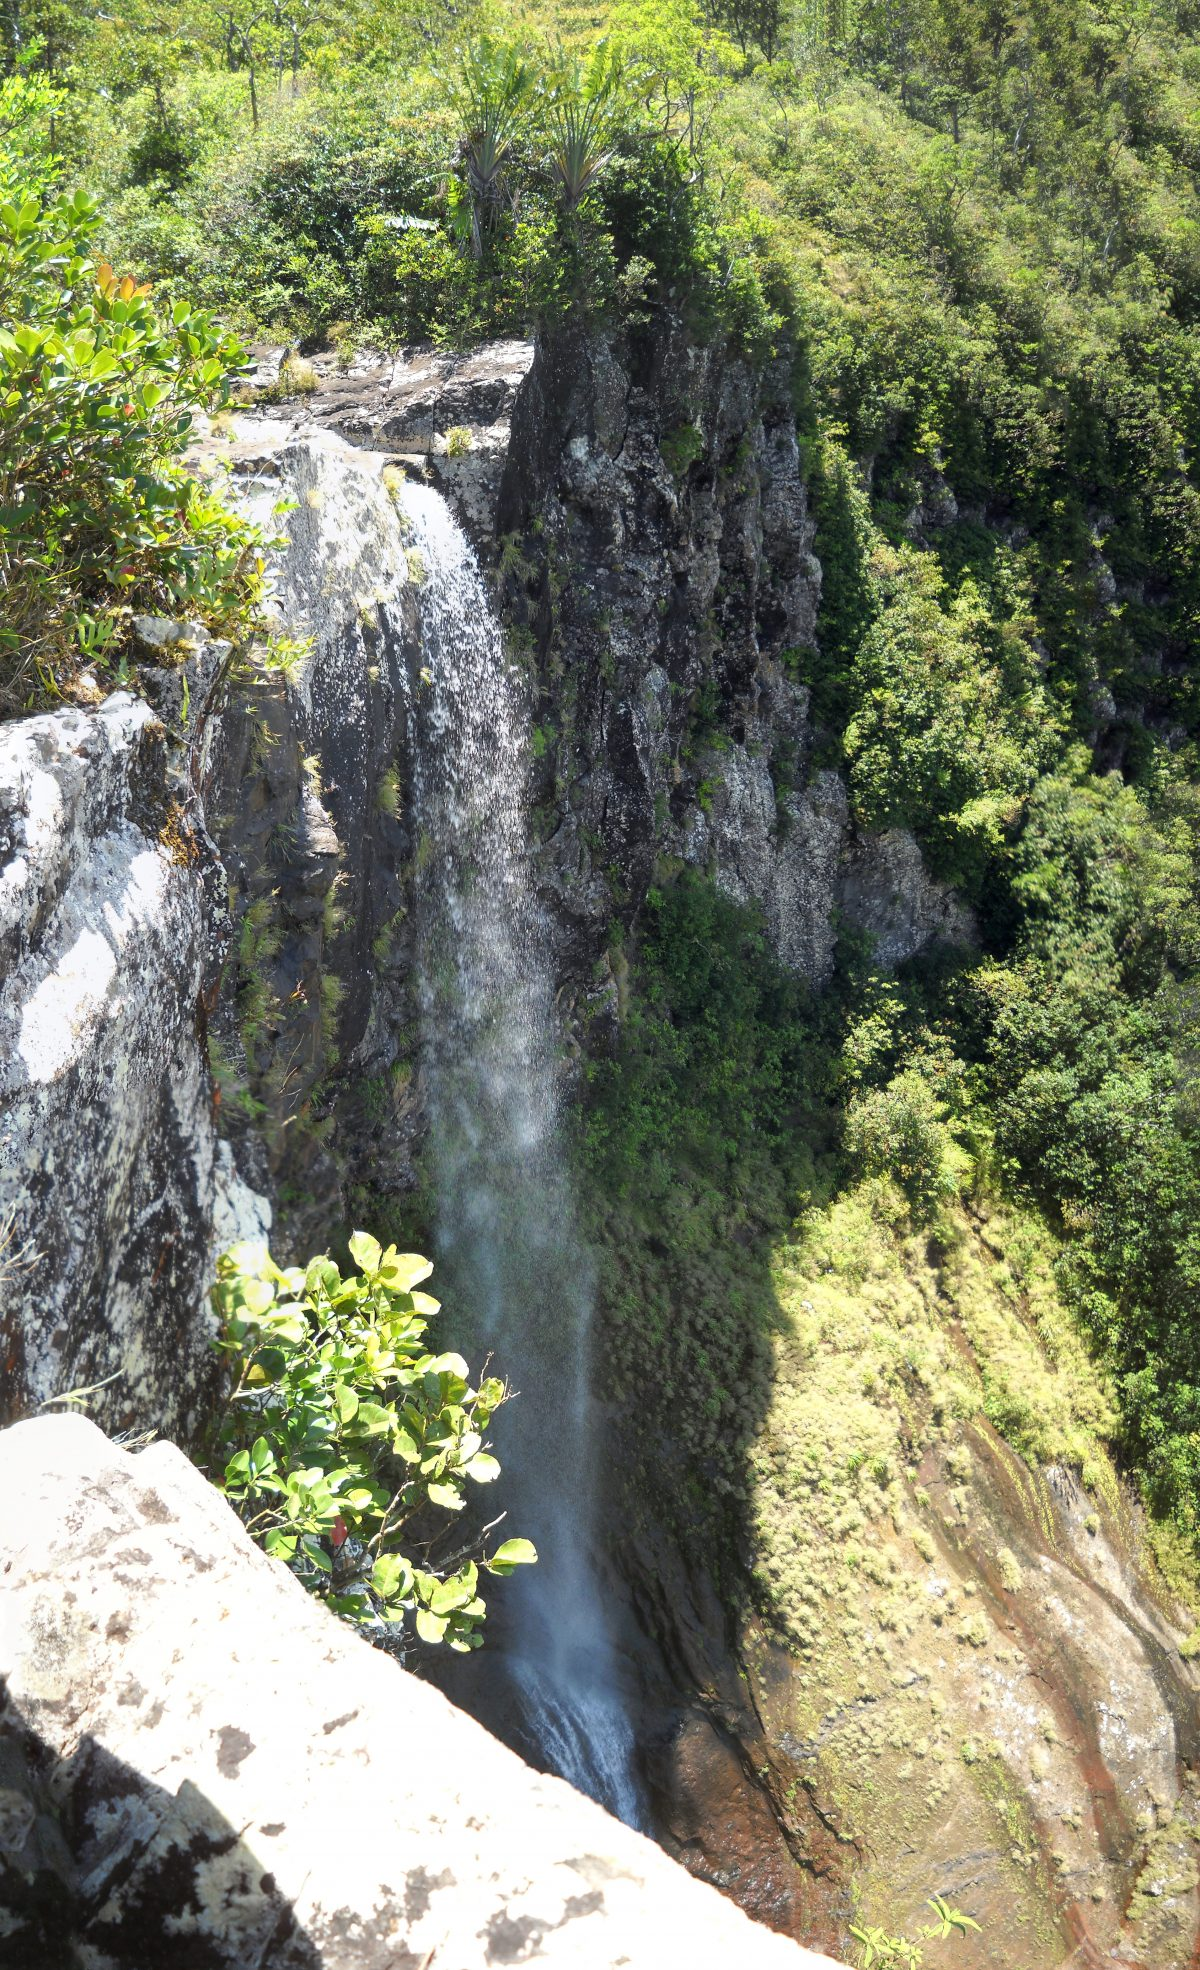 Alexandra Falls in the Black Gorges National Park